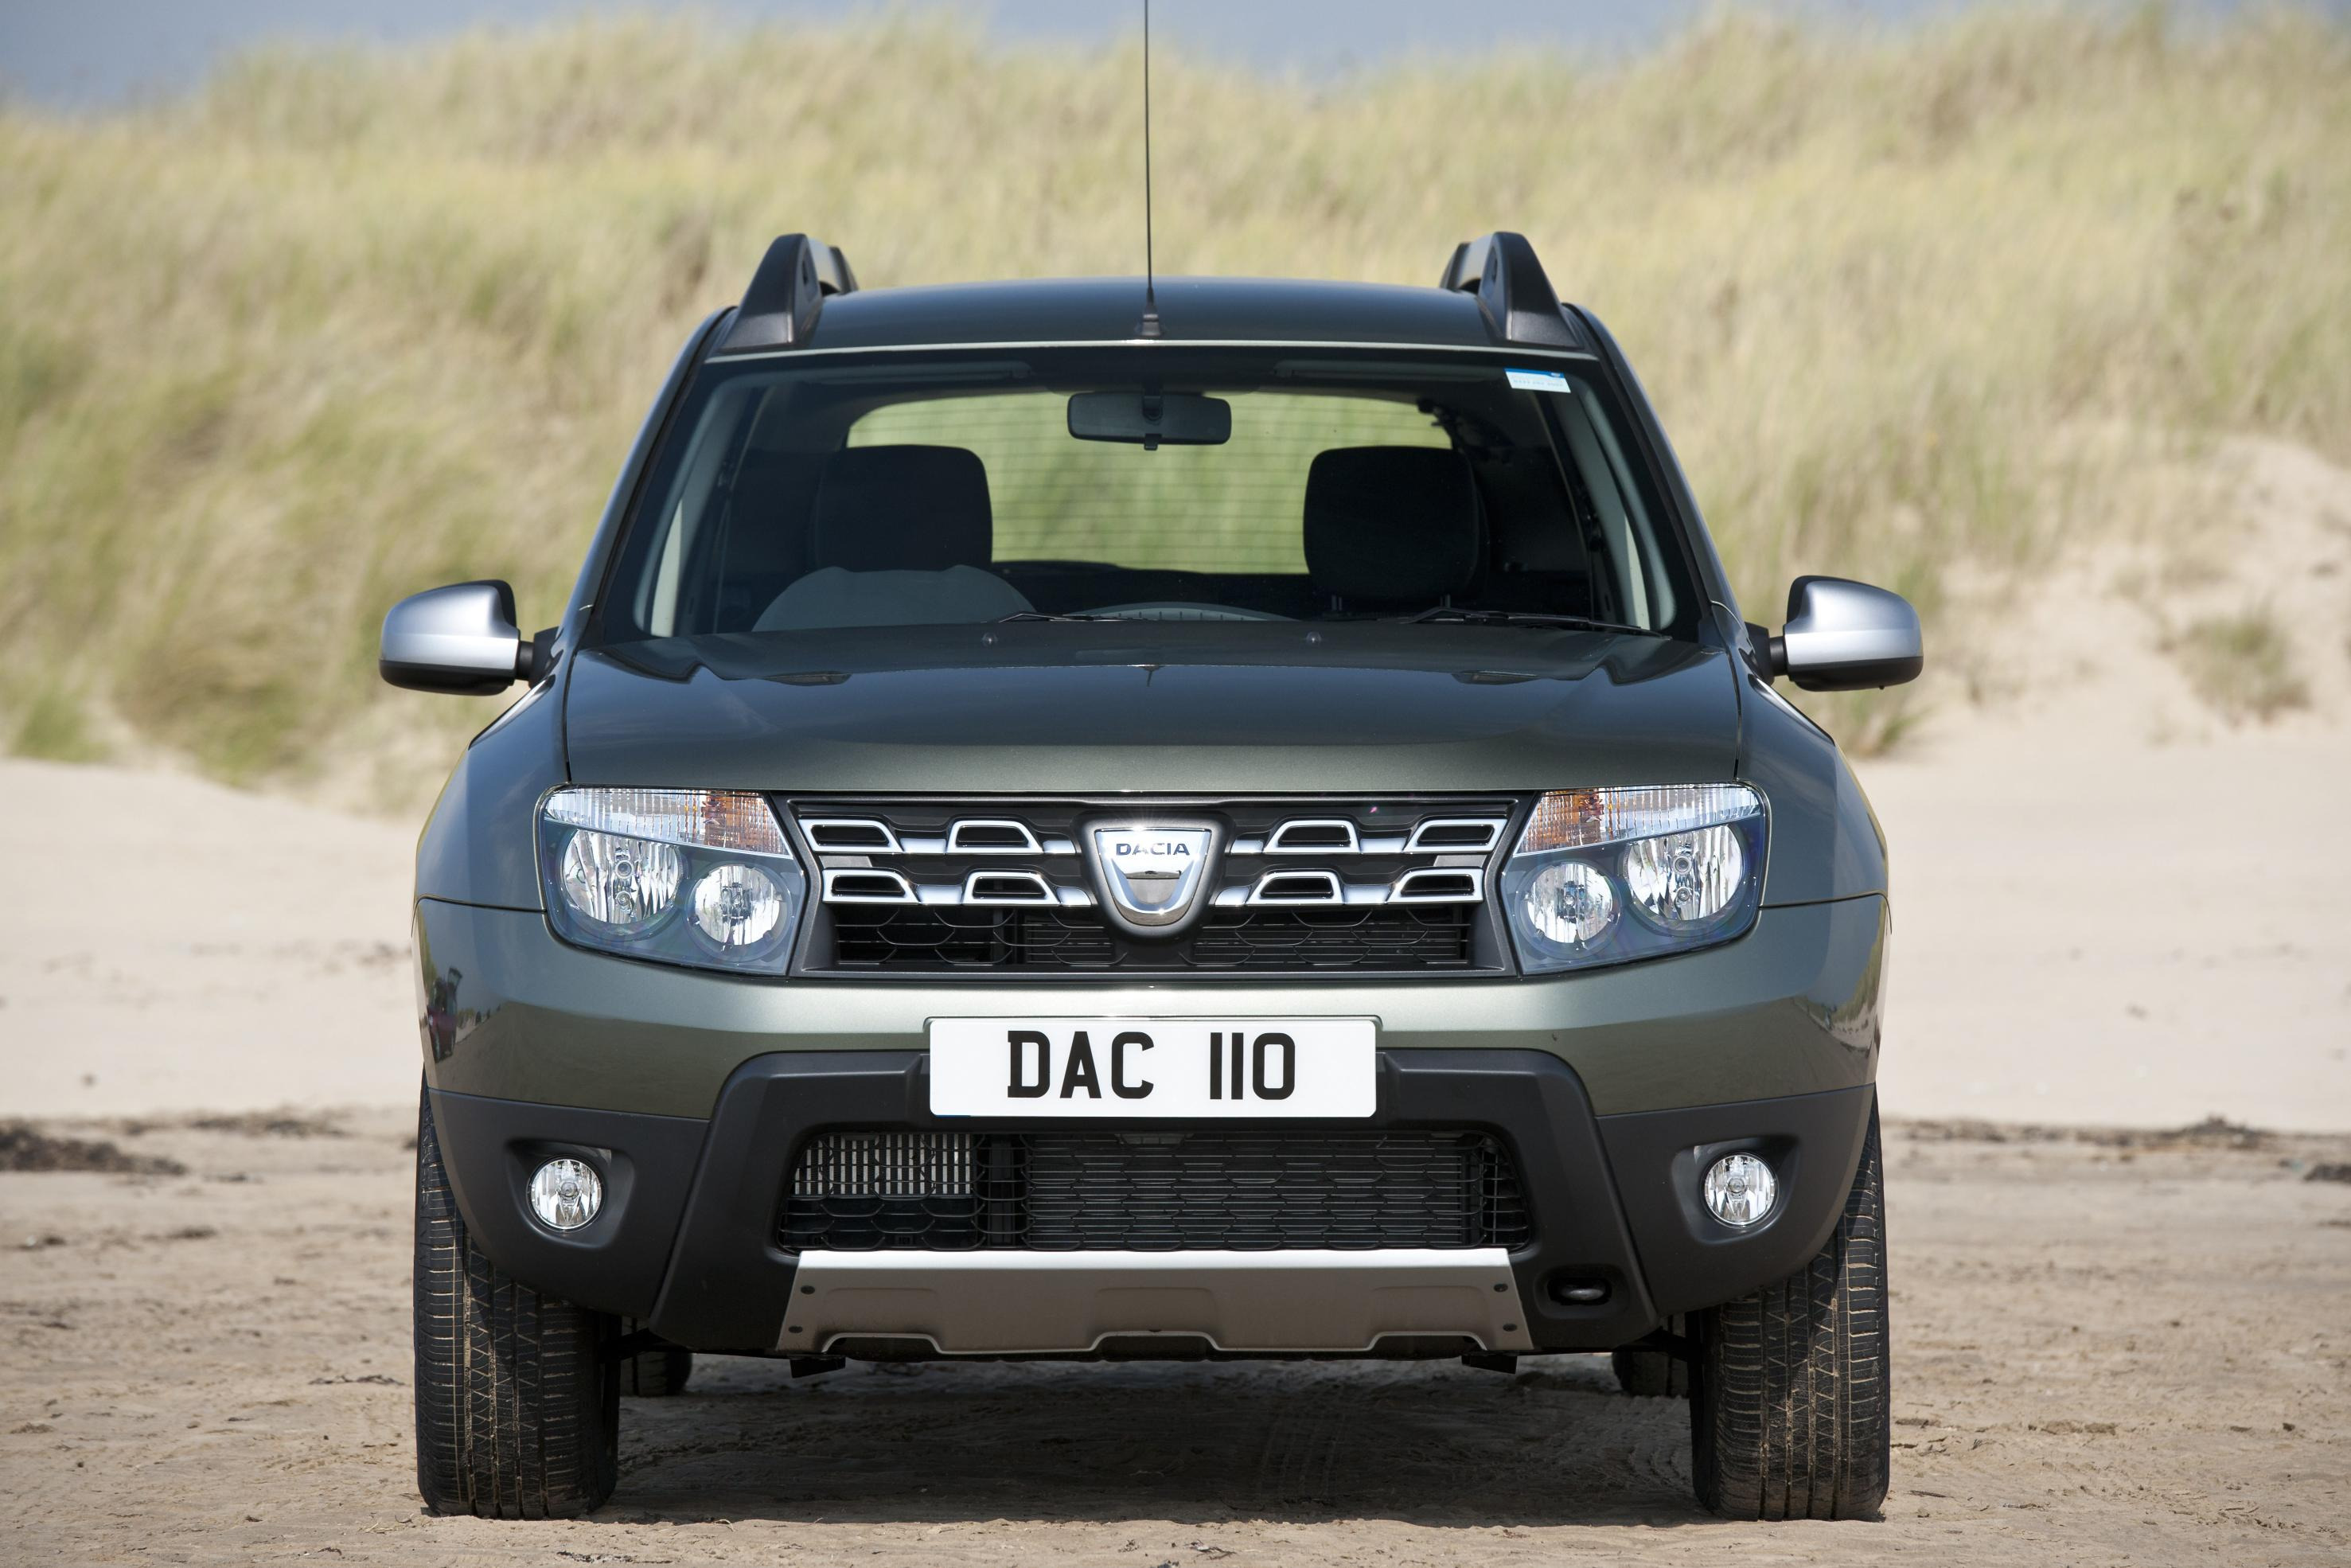 Budget Used Car Sales >> 2015 Dacia Duster Facelift for UK Market Unveiled ...